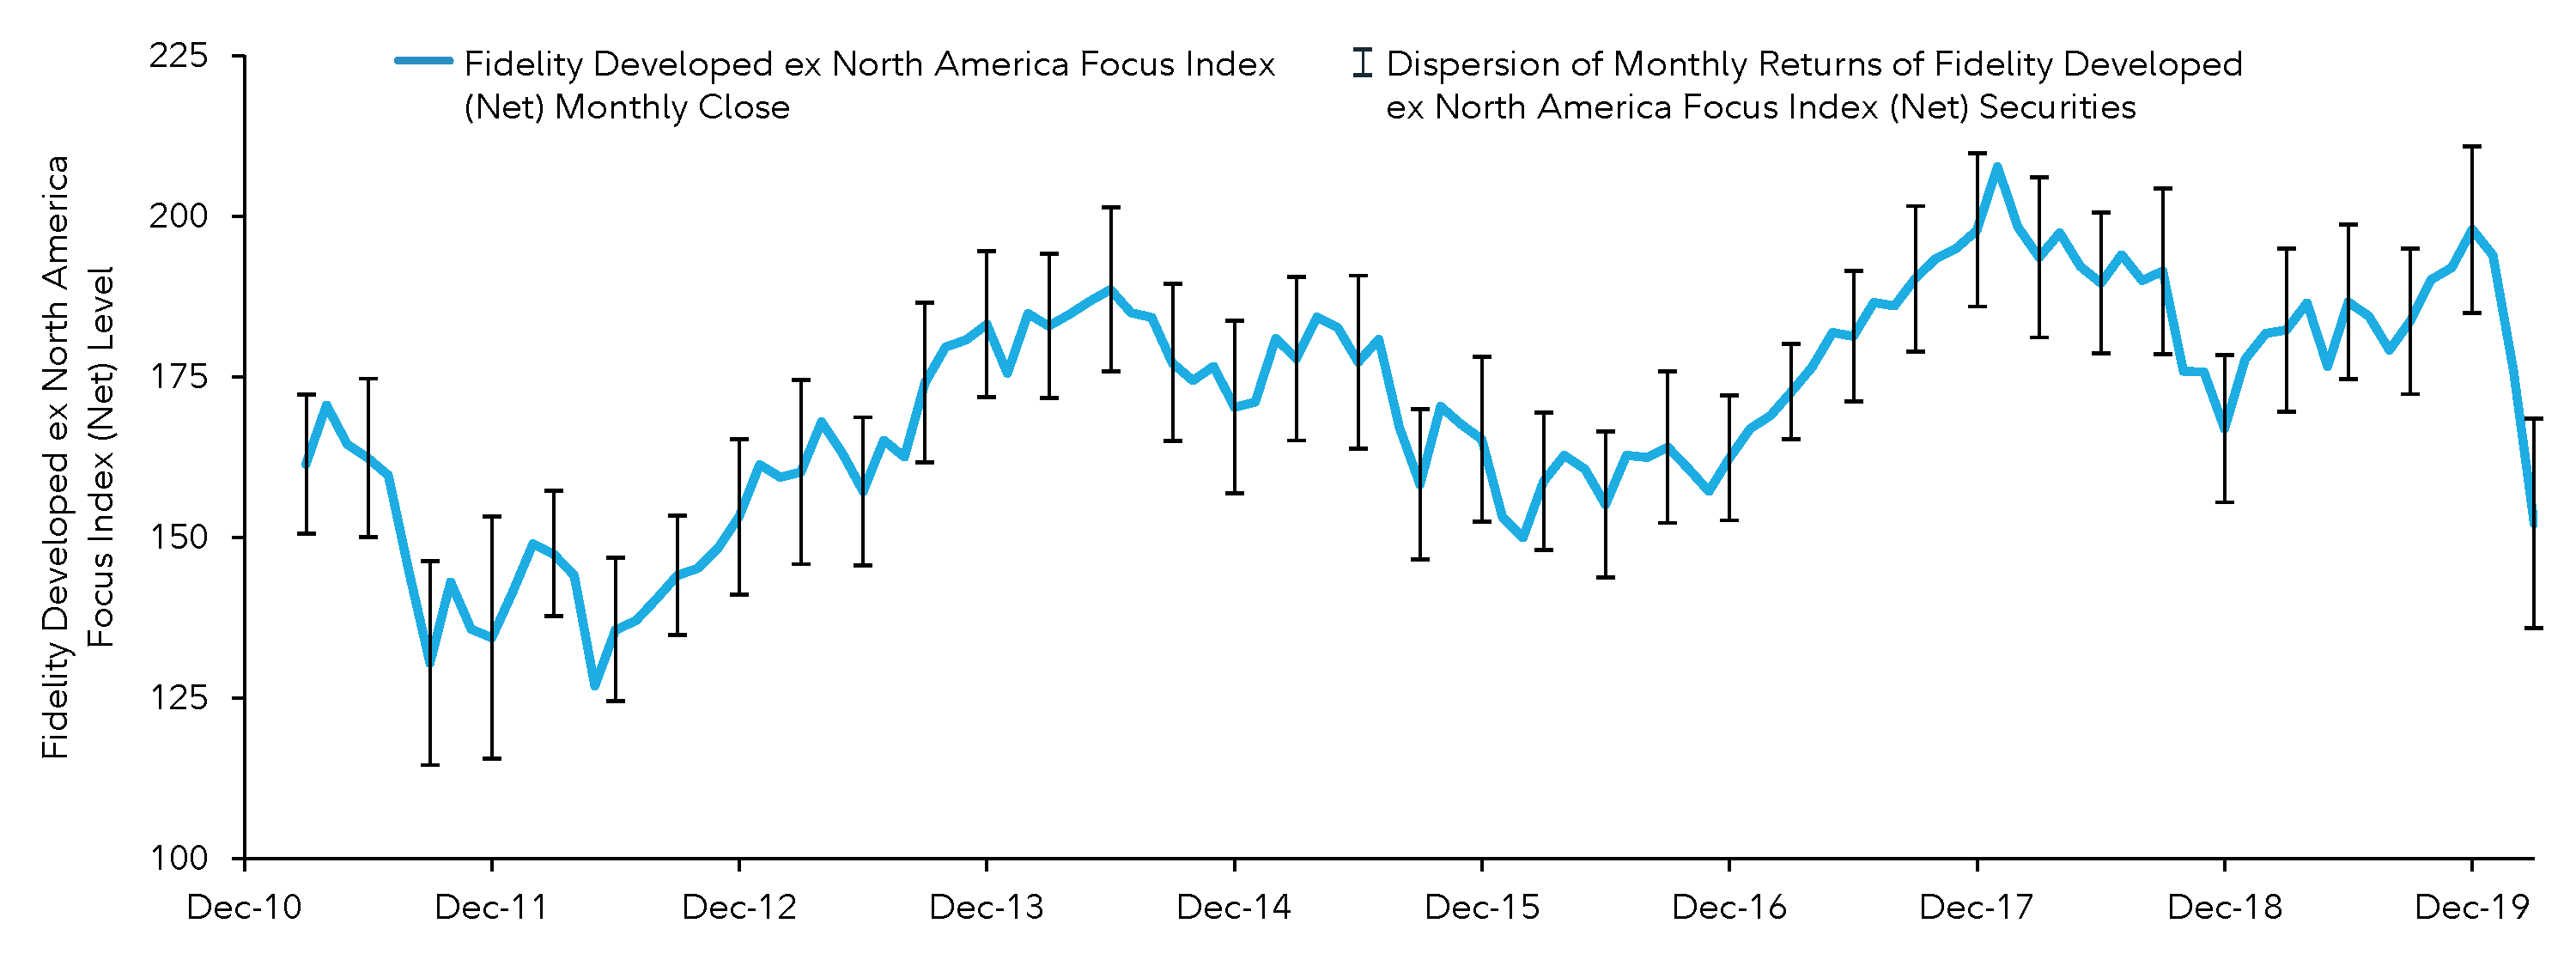 Graphic demonstrates how investing over time can provide potential tax-loss harvesting opportunities by showing the performance of the Fidelity Developed ex North American Focus Fund Index between December 2010 and December 2018. It also shows how much returns varied within each month during that time period, without showing specific amounts that returns varied. The intent is to show that in any given month index highs and lows will vary, sometimes significantly. This variation demonstrates that during different time periods there will generally be opportunities to harvest tax losses.